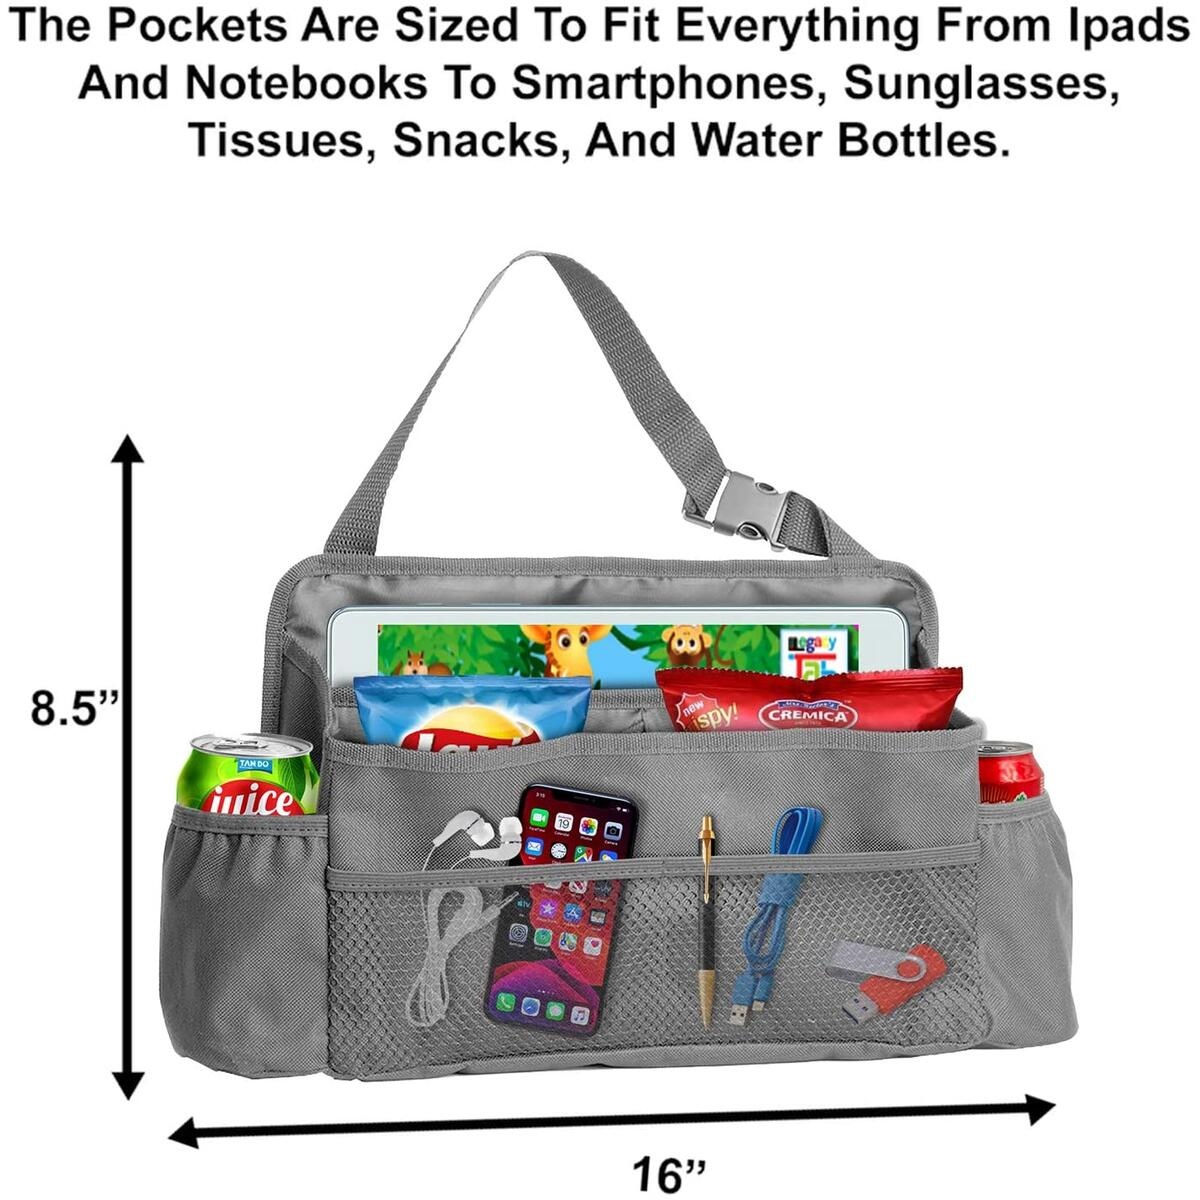 Car Storage Organizer, Passenger Car Seat Caddy Organizer For Office Supplies, Snacks And Toys, Front Or Back Seat Hanging Organizer With A Adjustable Strap, Tote Bag With Large Pockets, Grey